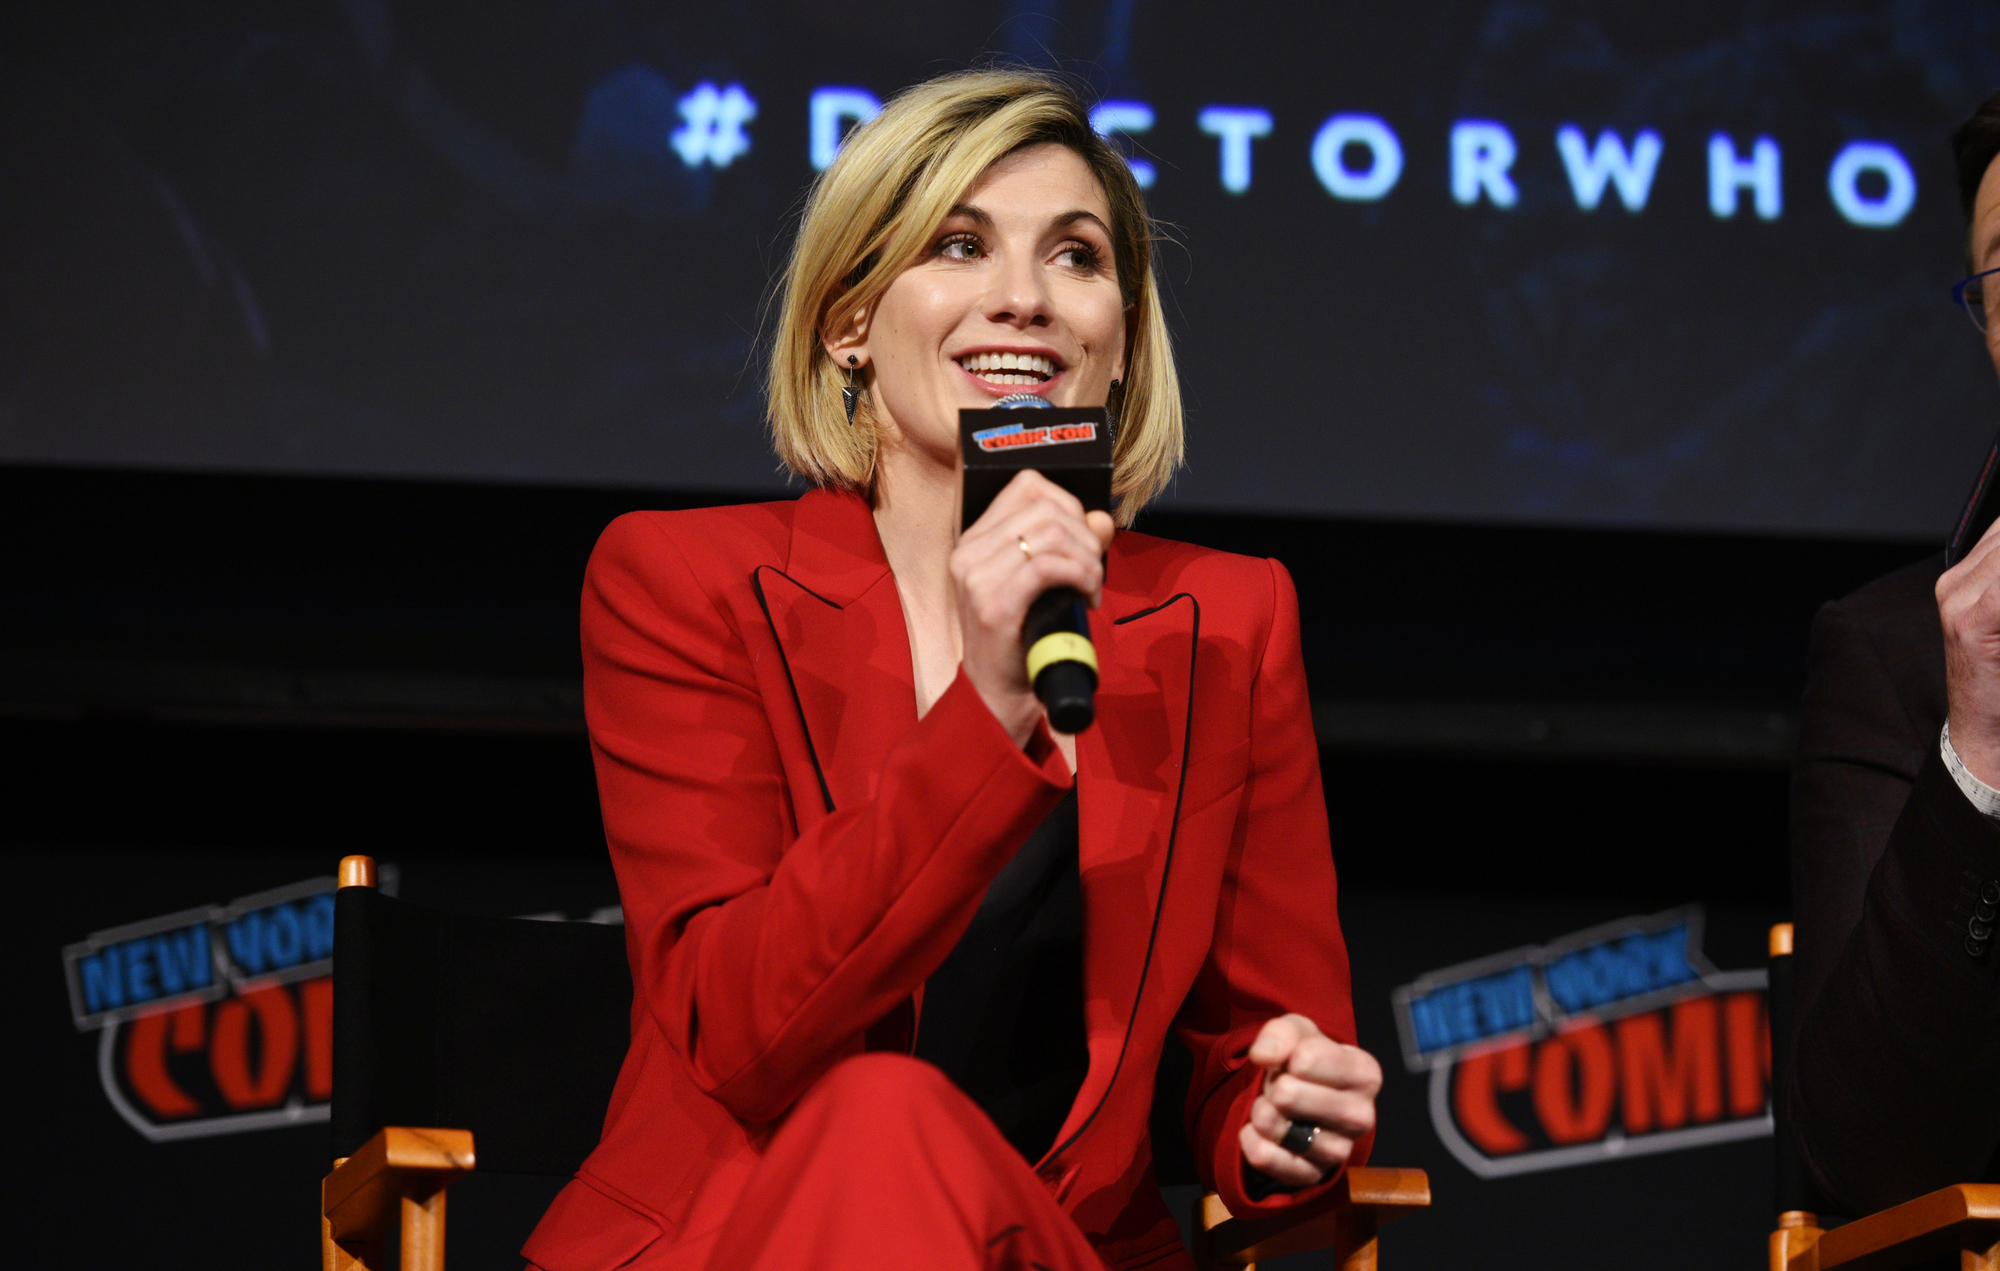 'Doctor Who' teases something new coming on the horizon